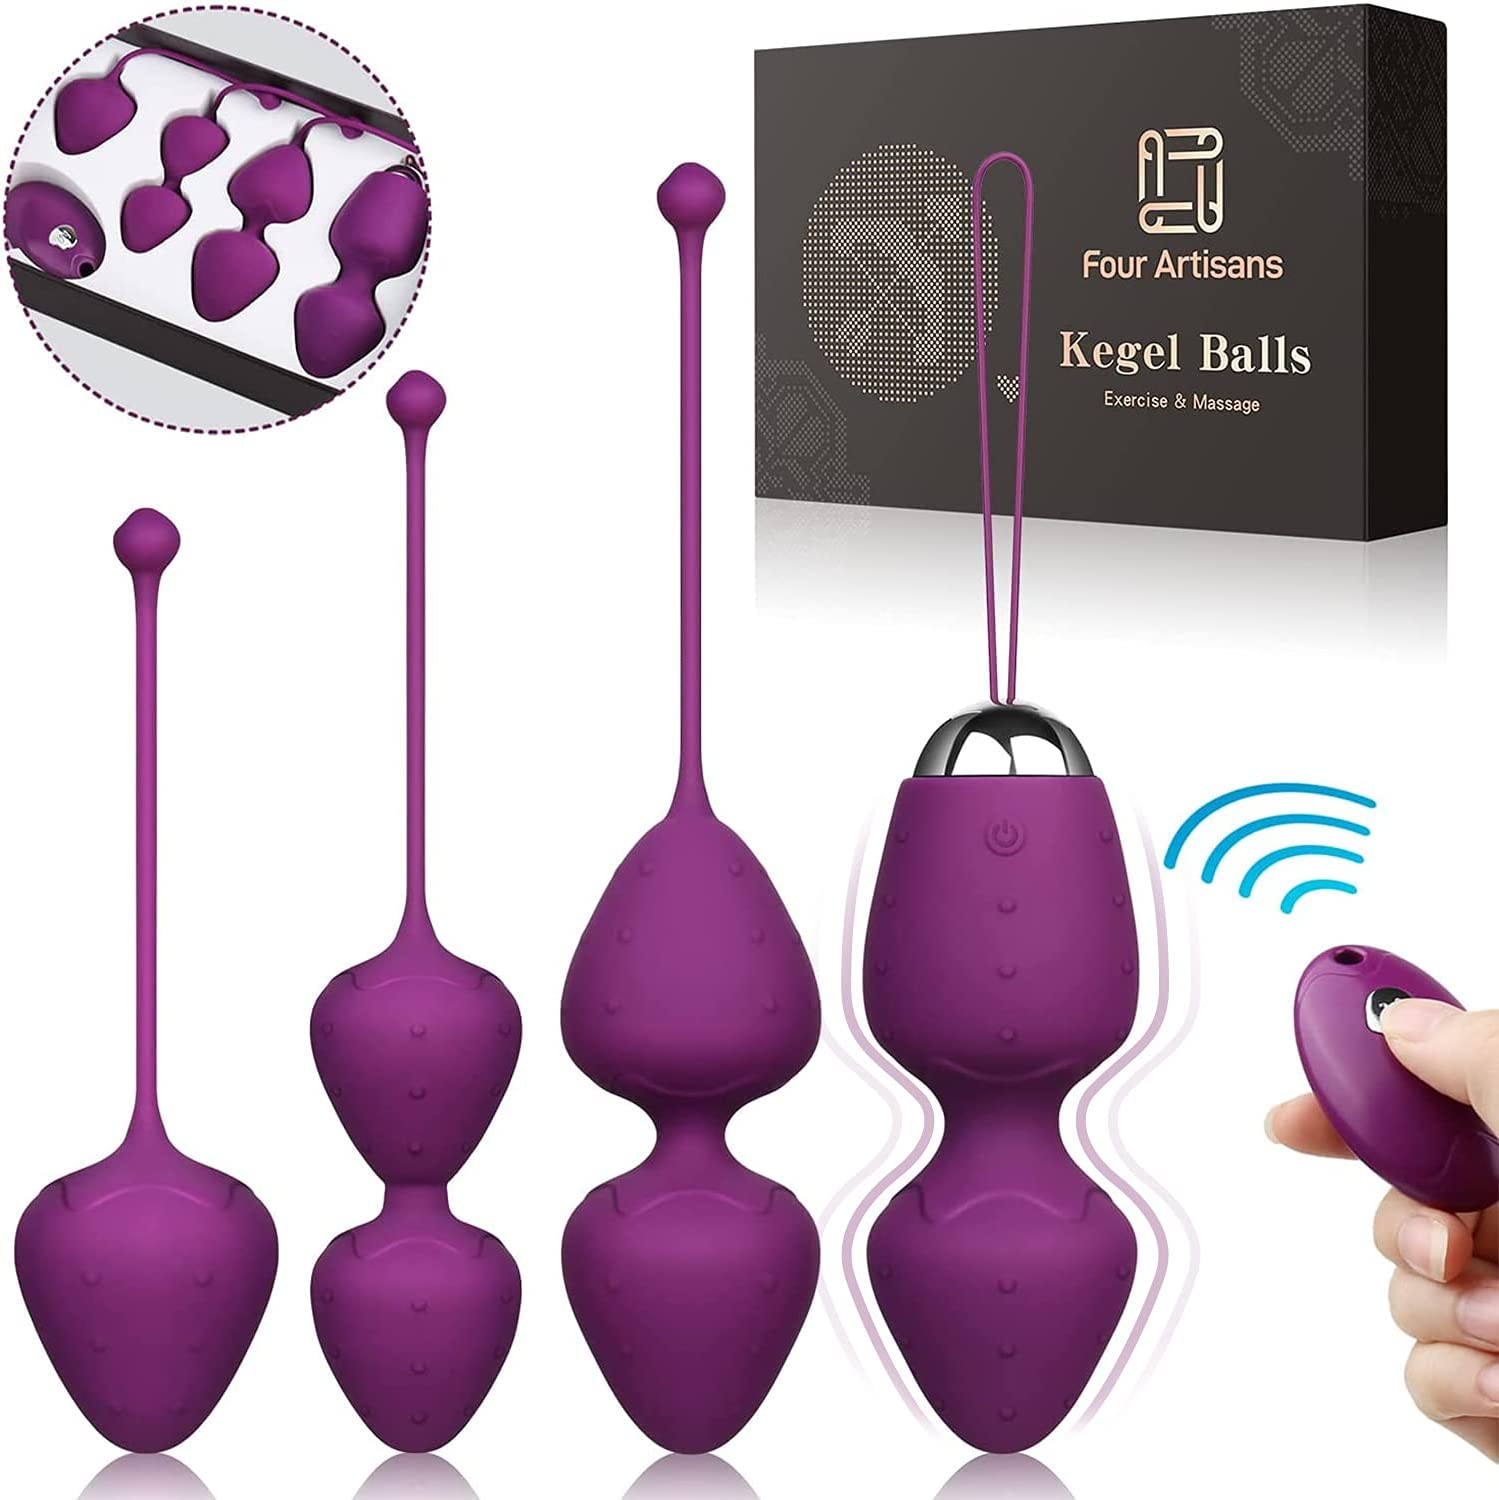 FourArtisans Kegel Balls for Don't miss the campaign Weights Exercise Women Special sale item W